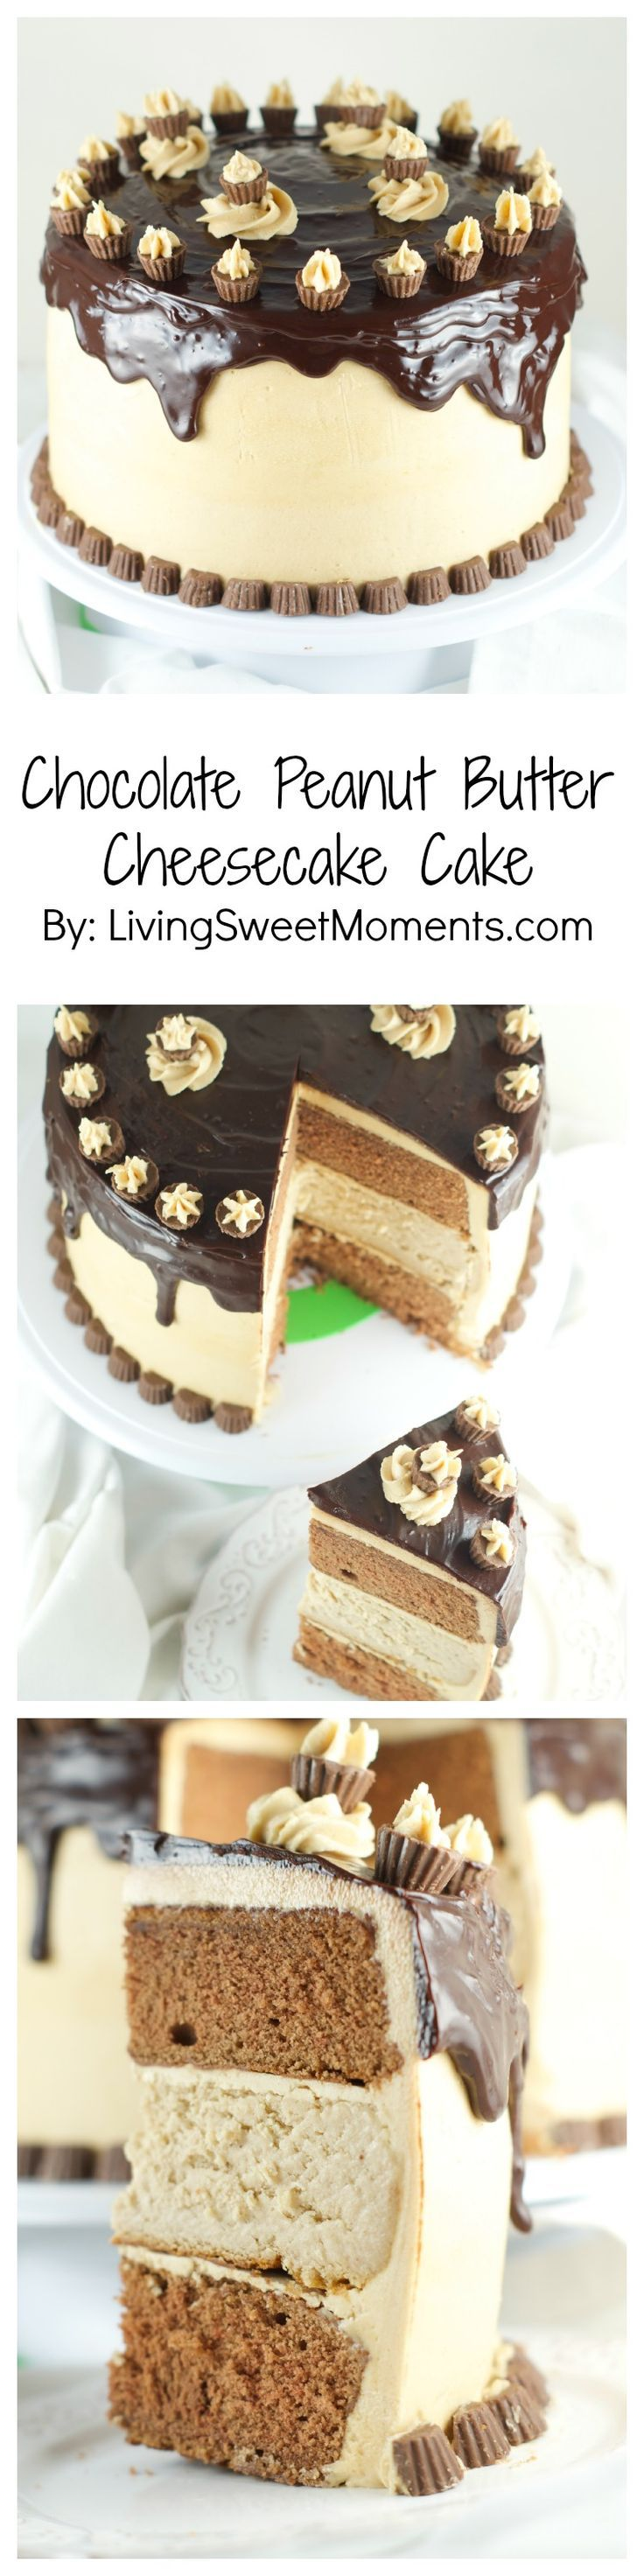 Chocolate Peanut Butter Cheesecake Cake - This is amazing cake features 2 chocolate cakes, a peanut butter cheesecake all covered in peanut butter buttercream and drizzled with chocolate ganache. The ultimate dessert. Find more at www.livingsweetmoments.c